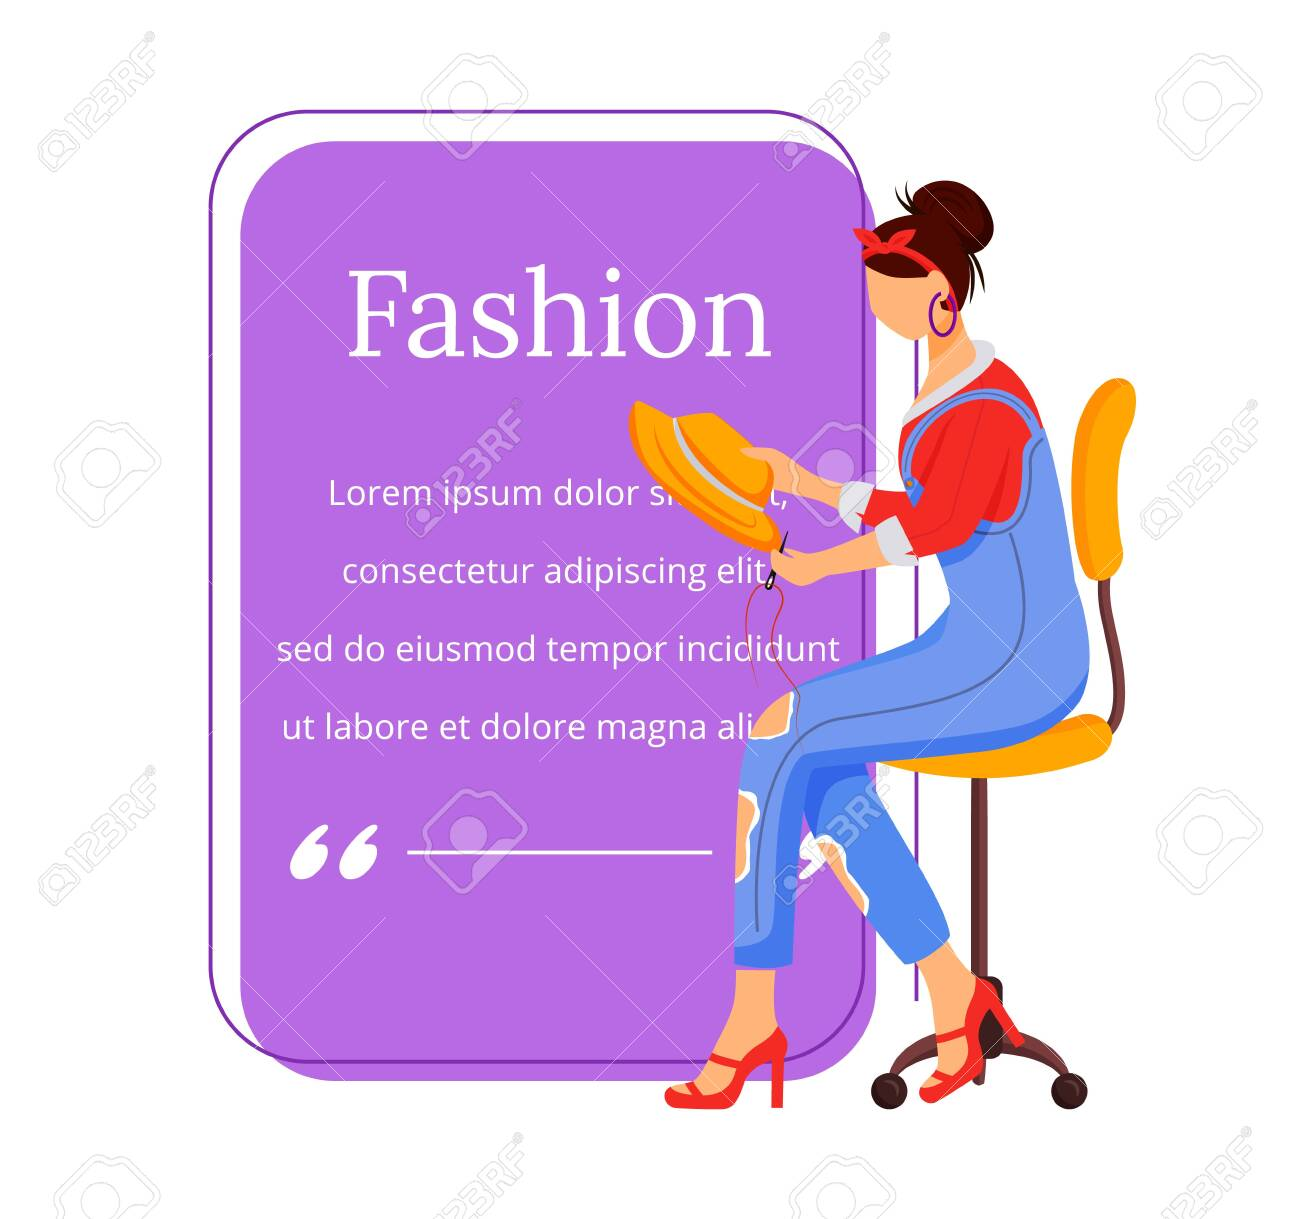 Fashion Designer Flat Color Vector Character Quote Individual Royalty Free Cliparts Vectors And Stock Illustration Image 139089016